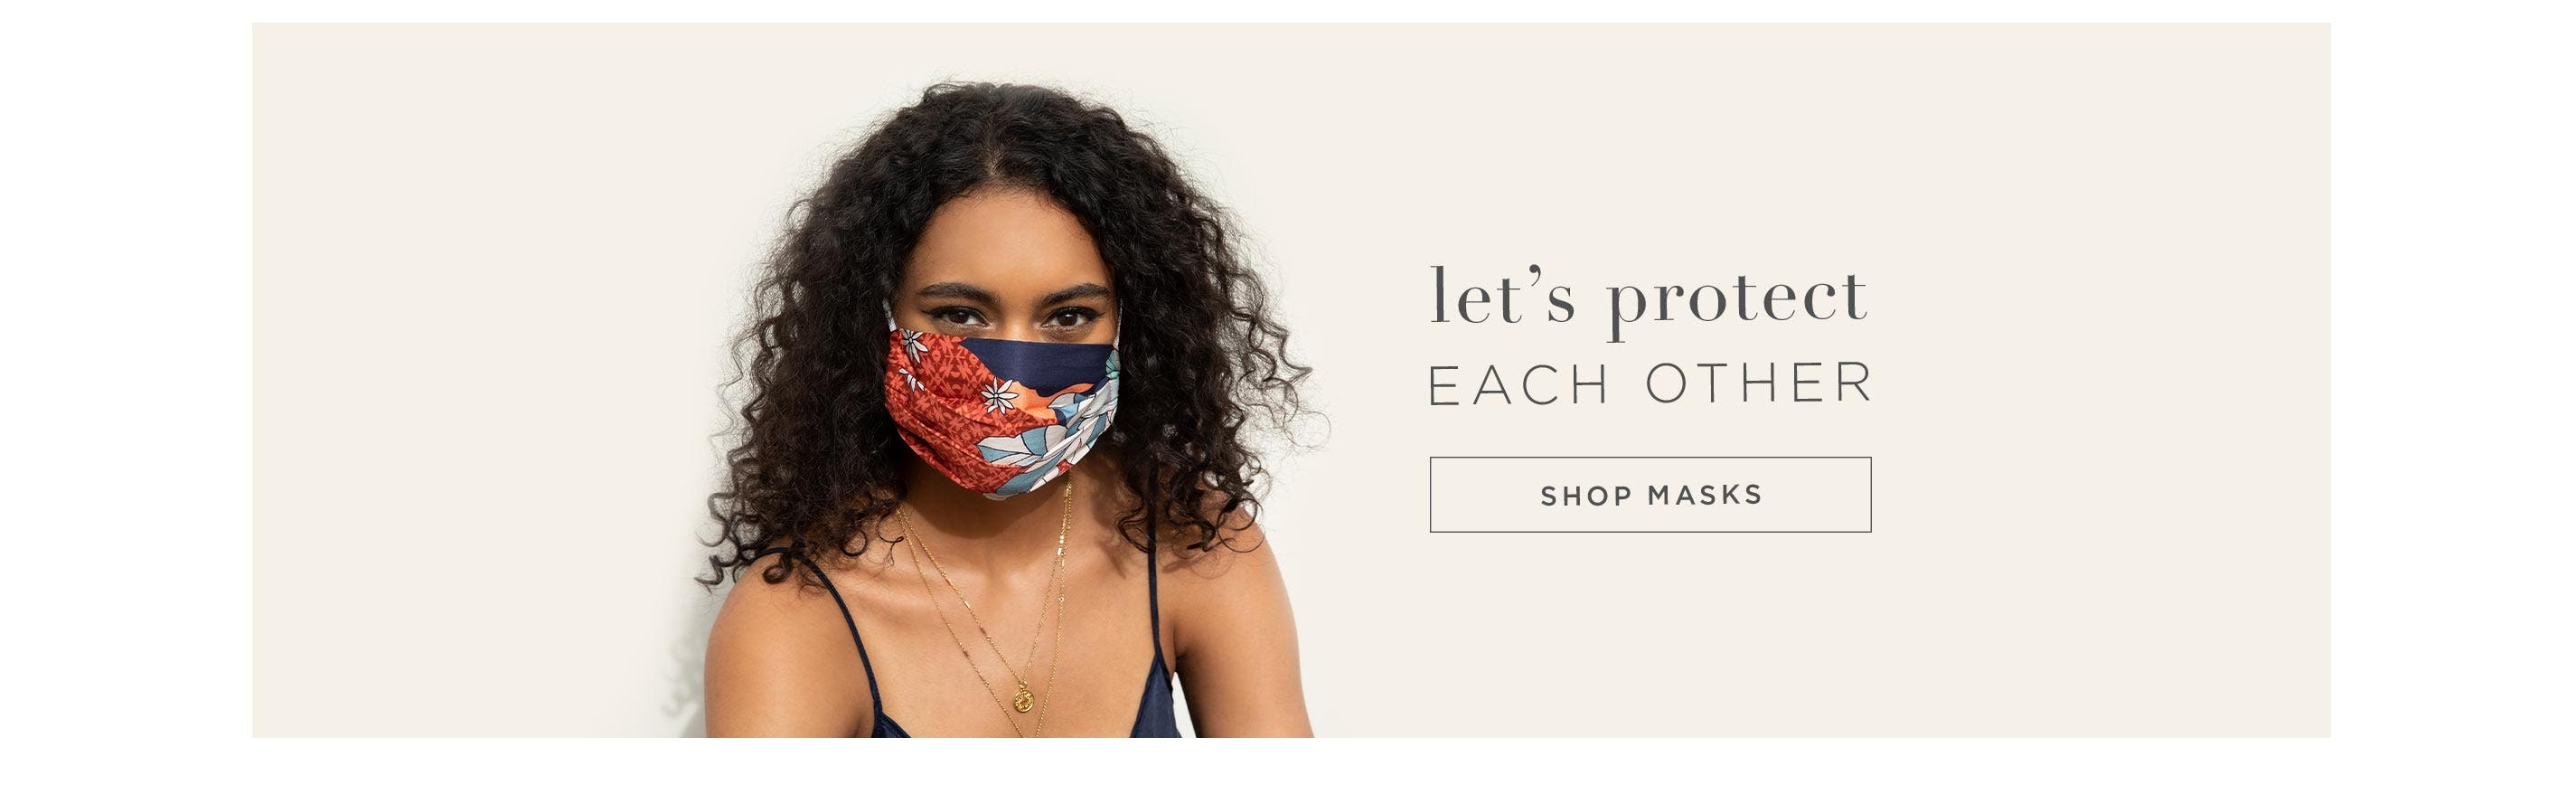 Let's Protect Each Other - Shop Masks